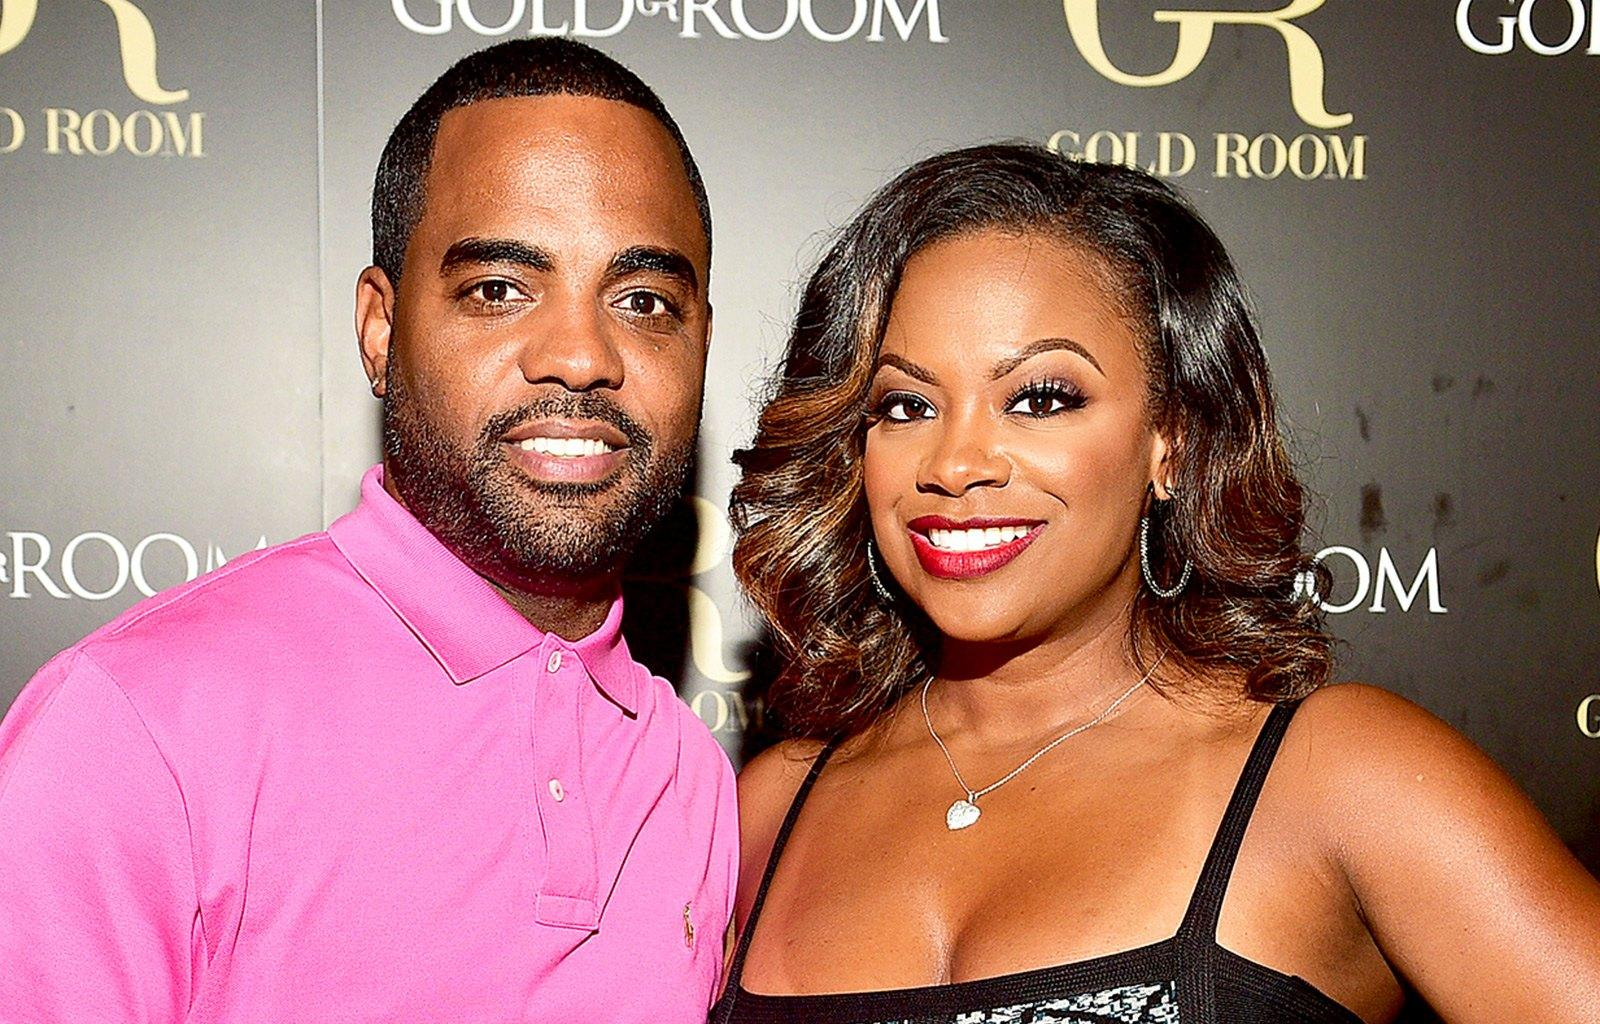 Todd Tucker's Fans Are Raving About His Photo With Kandi Burruss - Check It Out Here